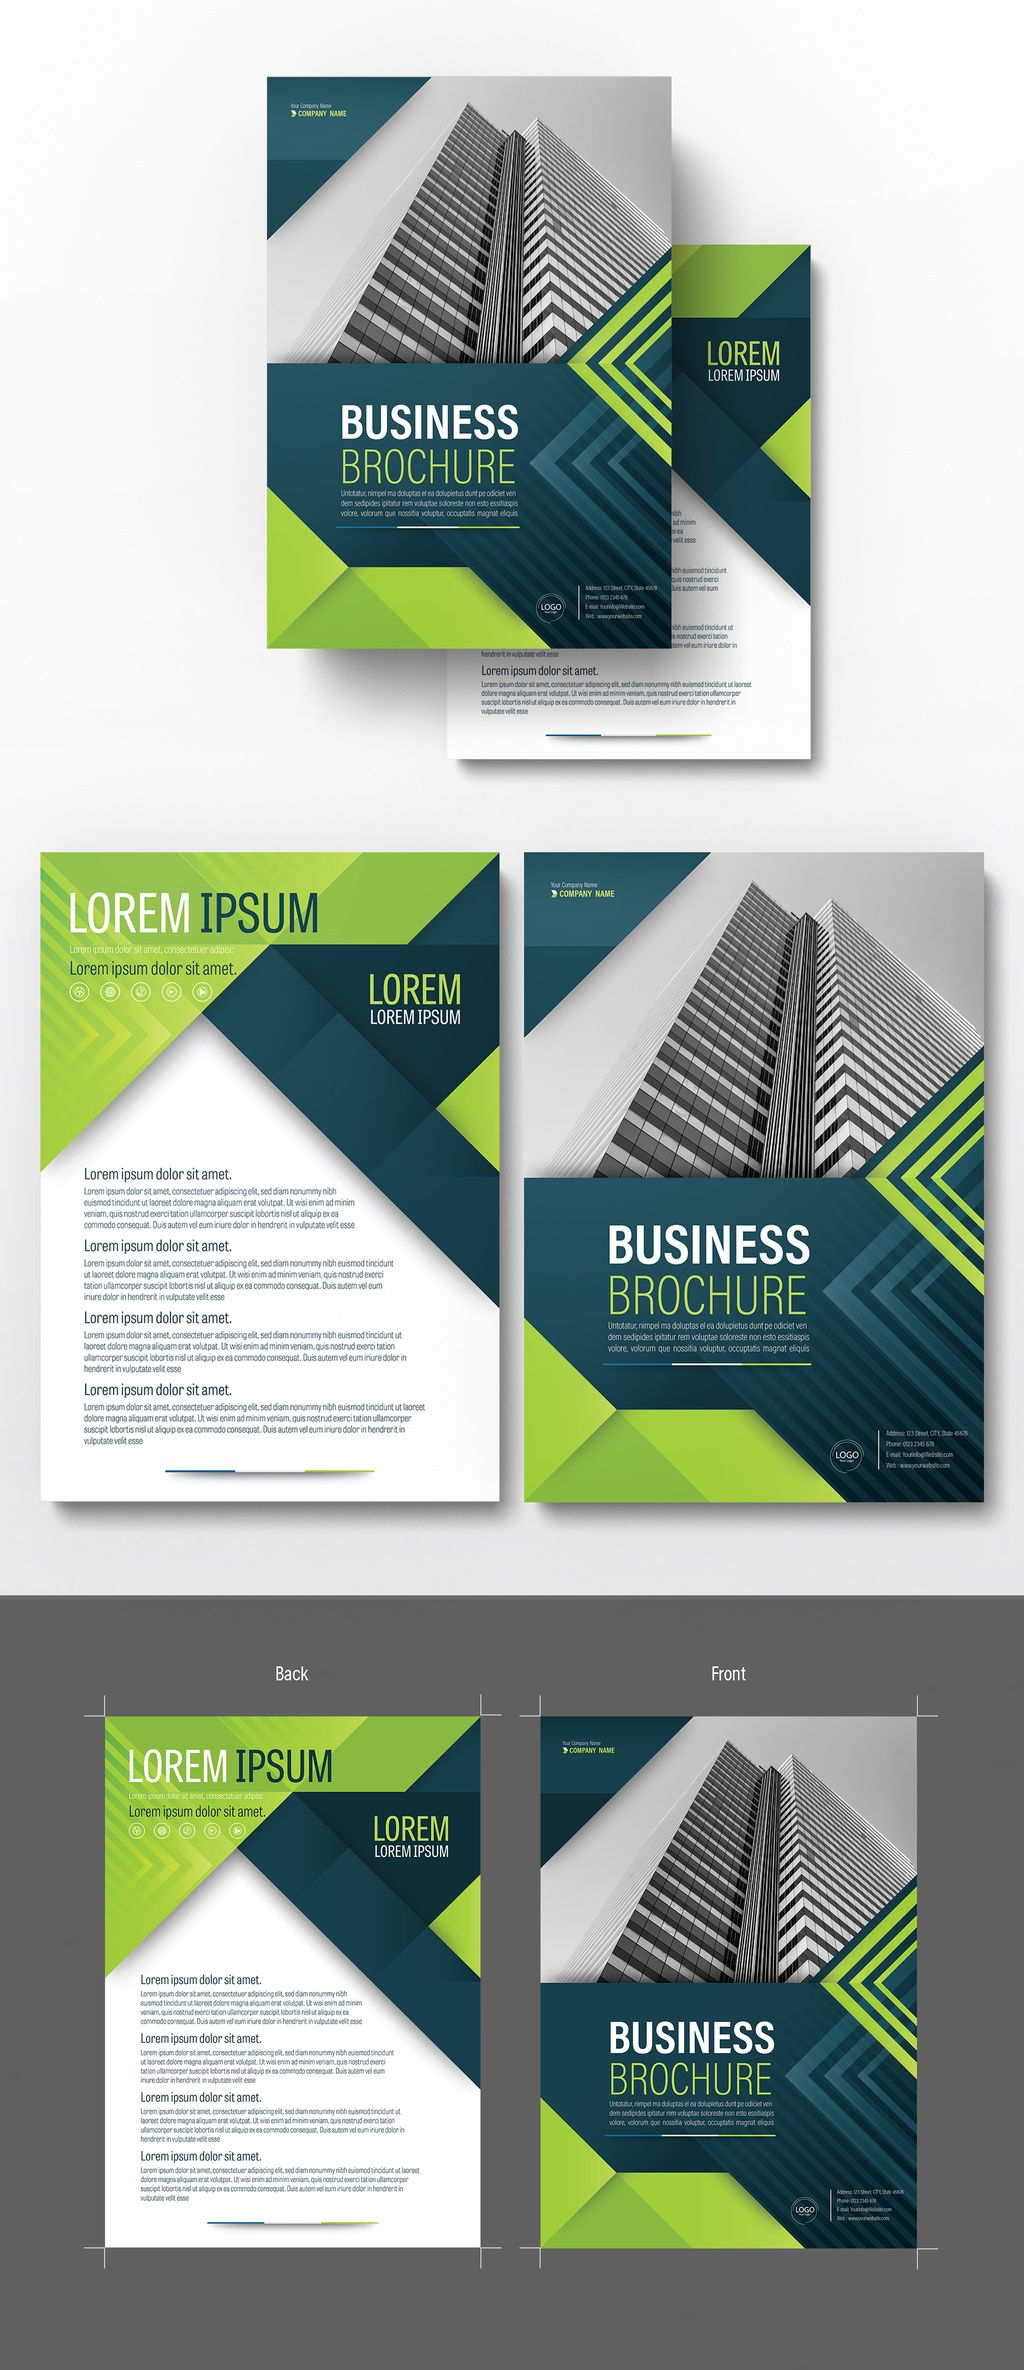 Brochure Cover Layout With Blue And Green Accents   Image